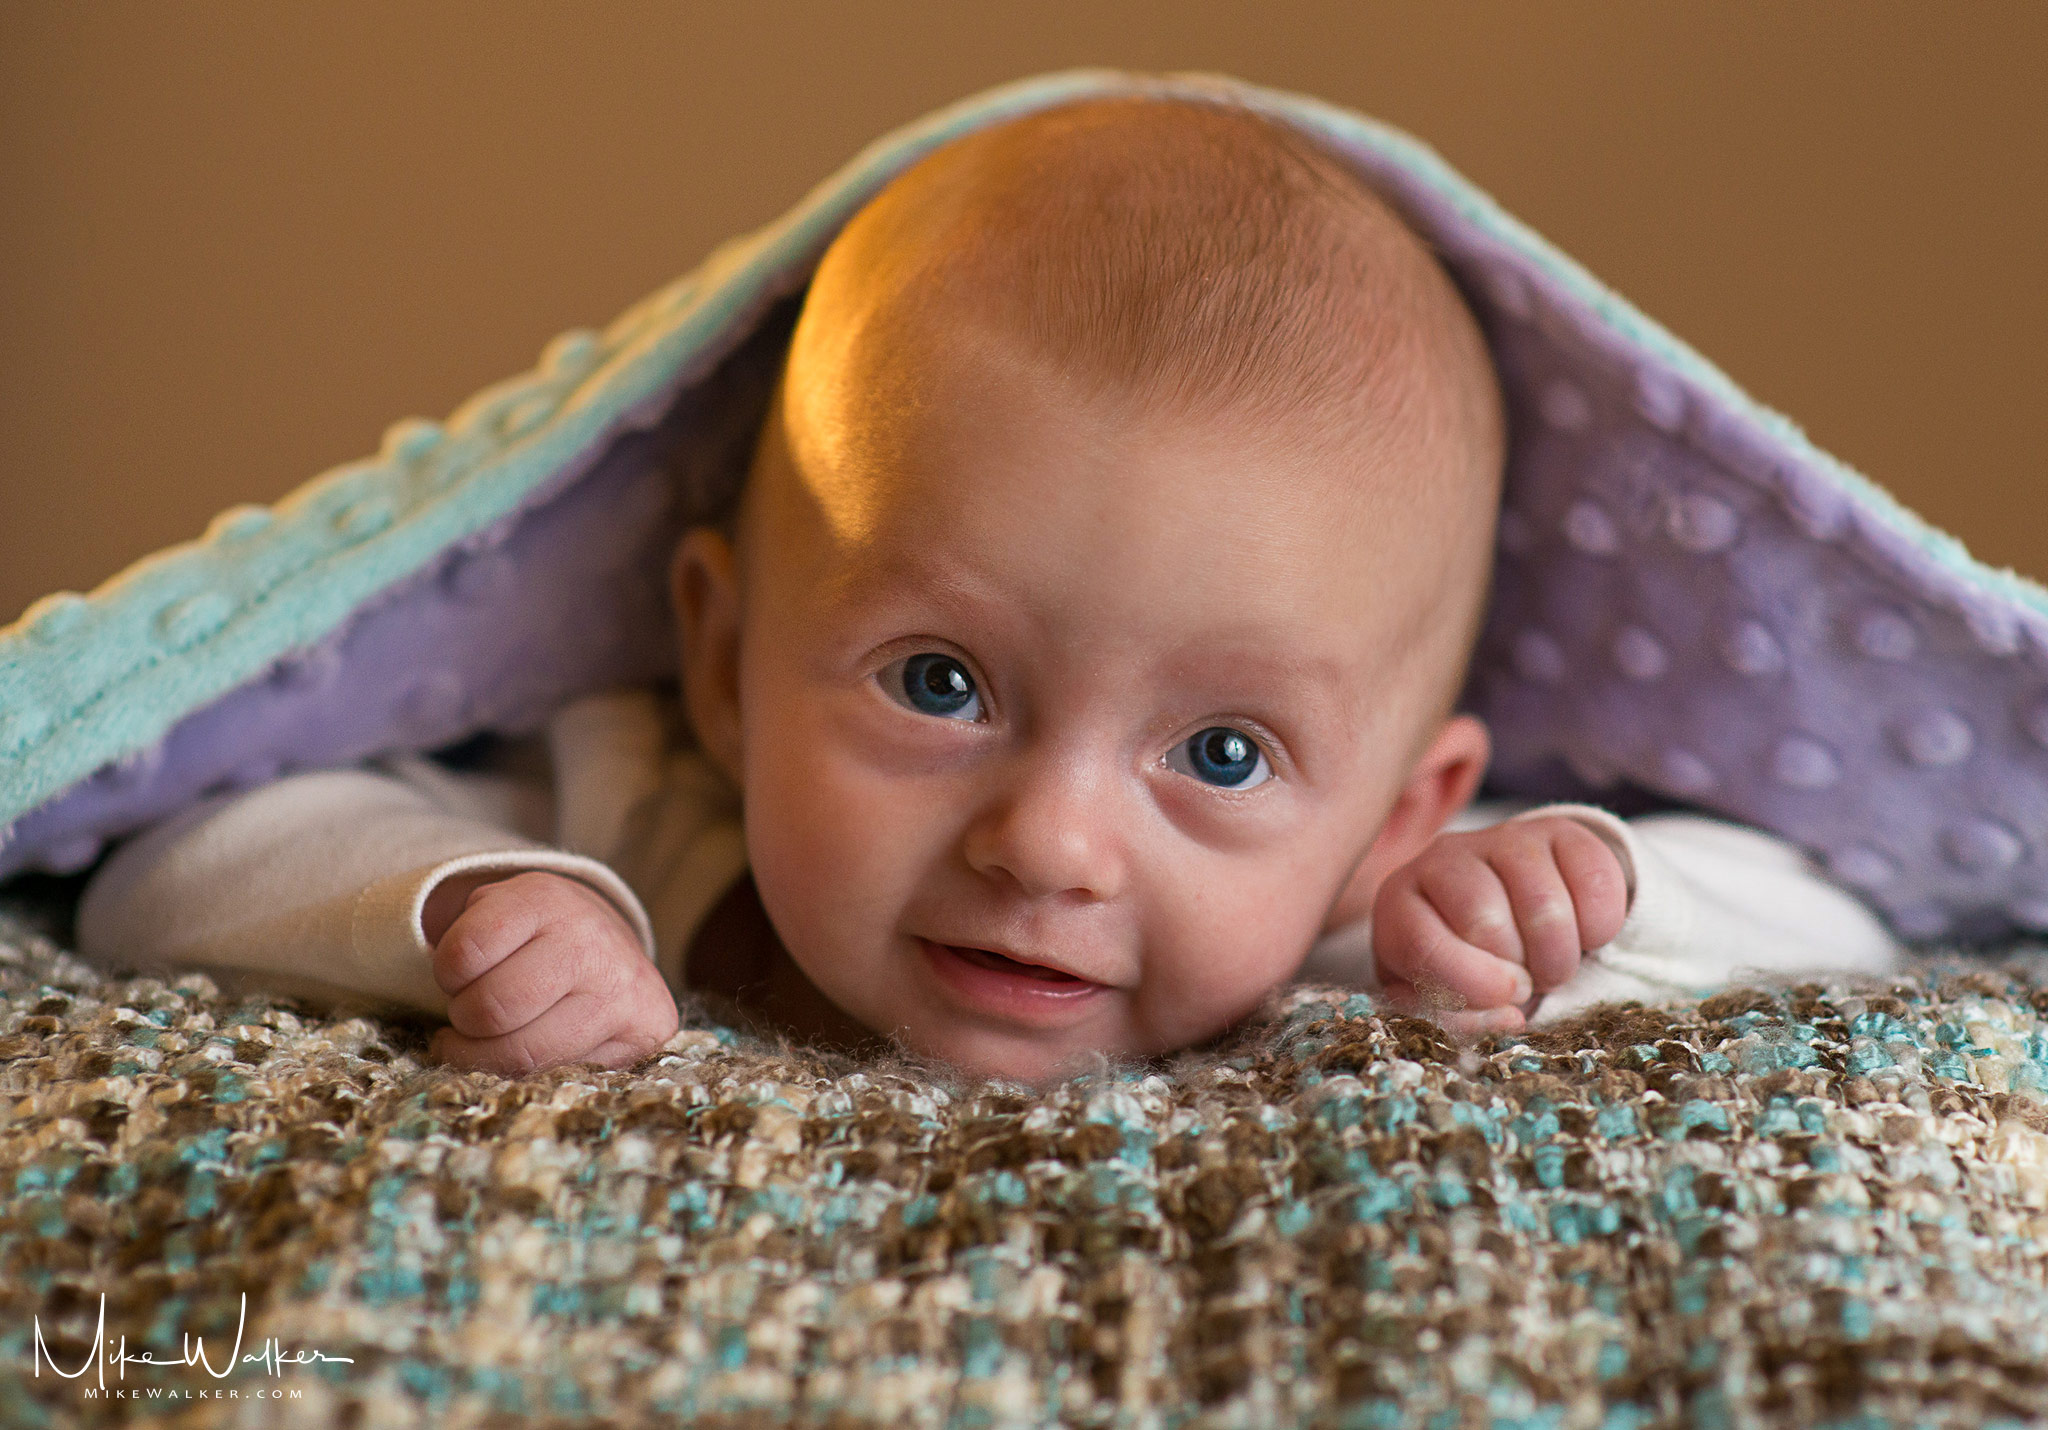 A baby peaking out of a blanket. Family photographer Mike Walker.